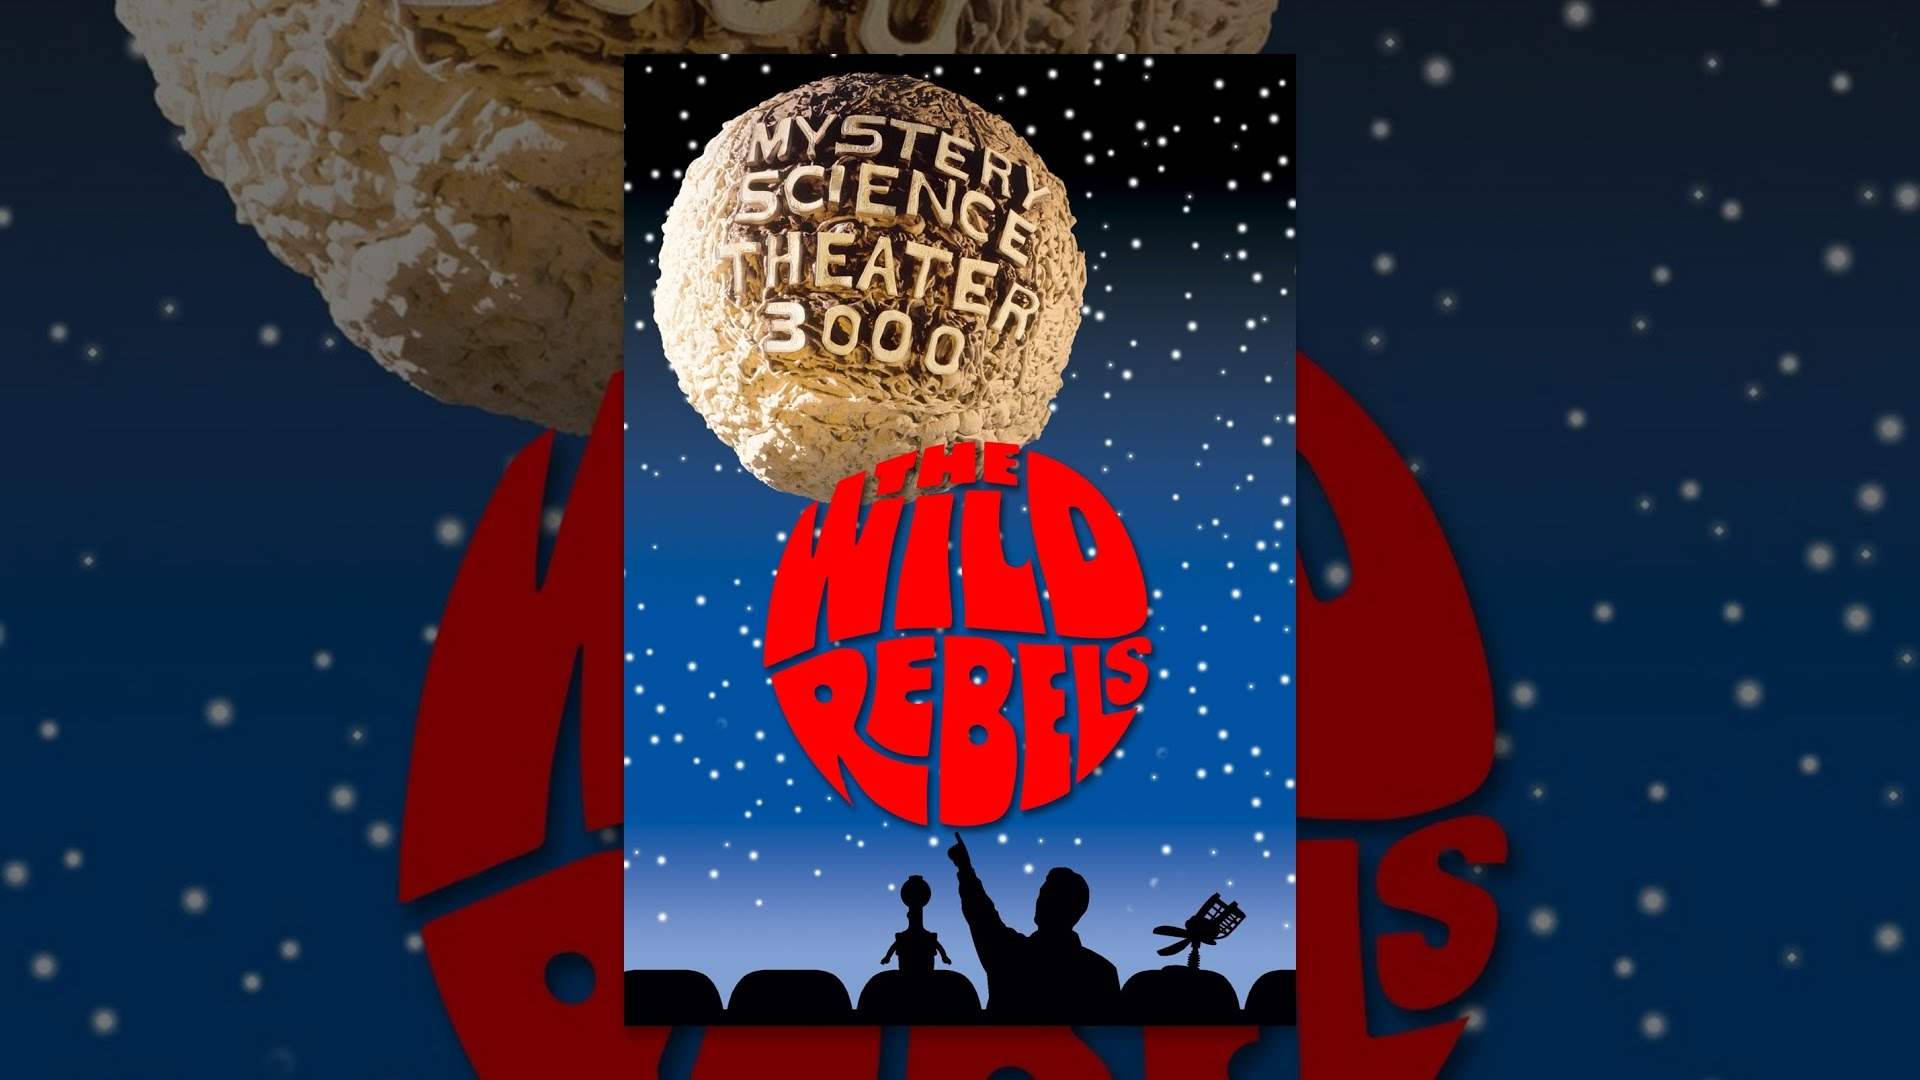 Mystery Science Theater 3000 Wild Rebels Youtube